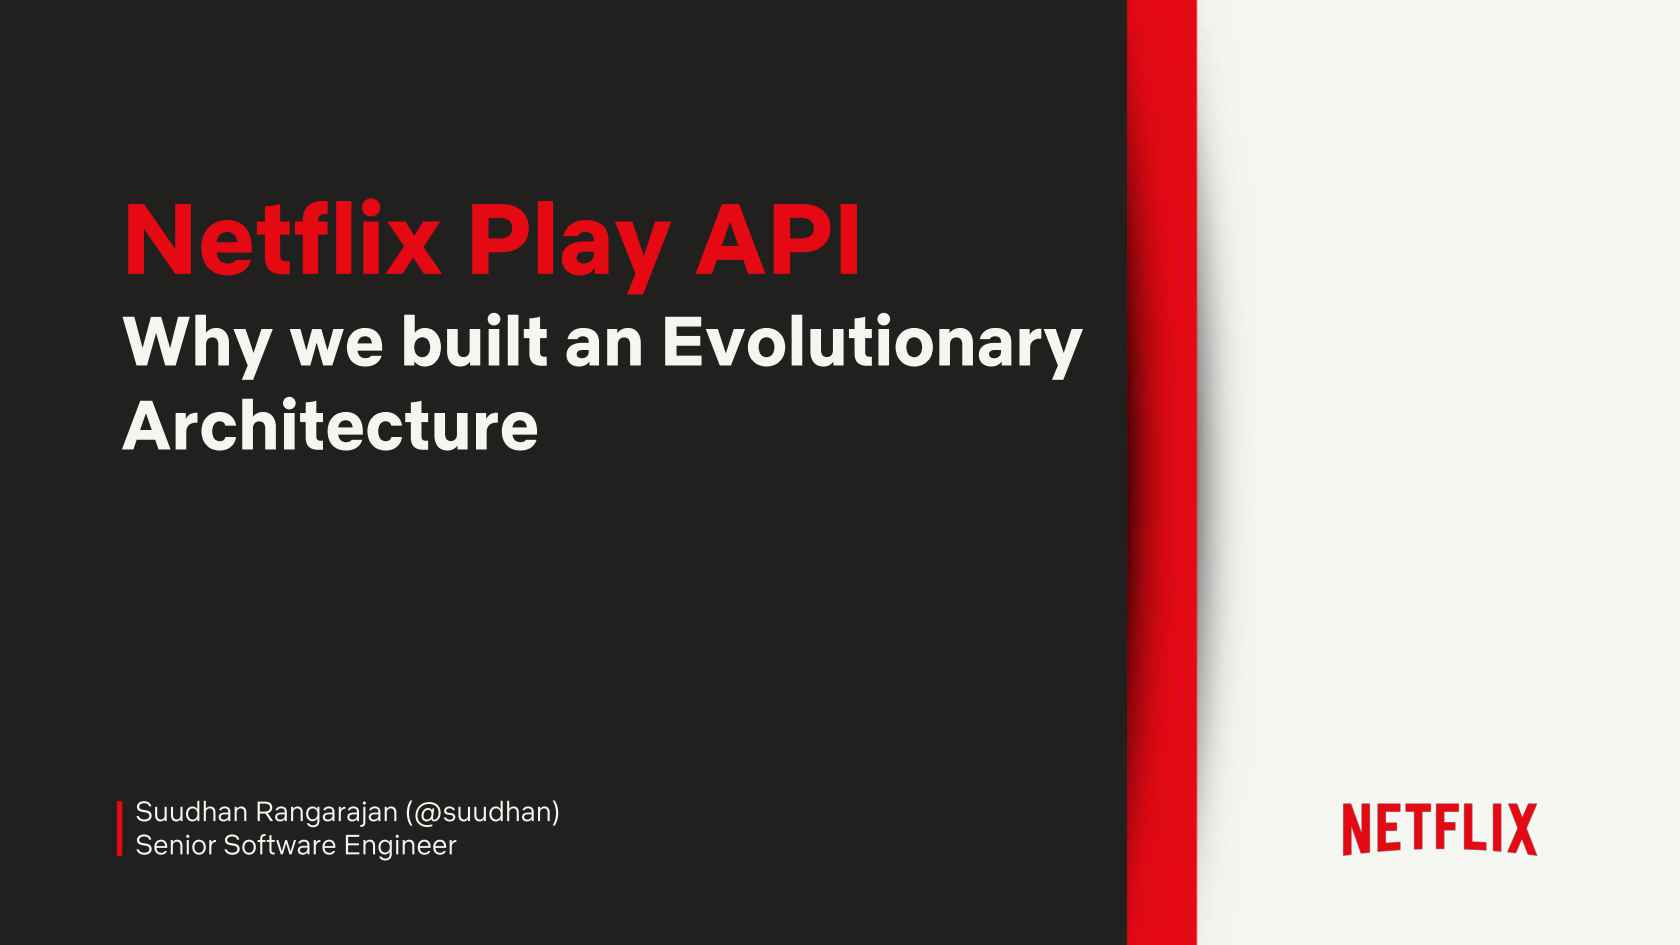 Netflix Play API - An Evolutionary Architecture